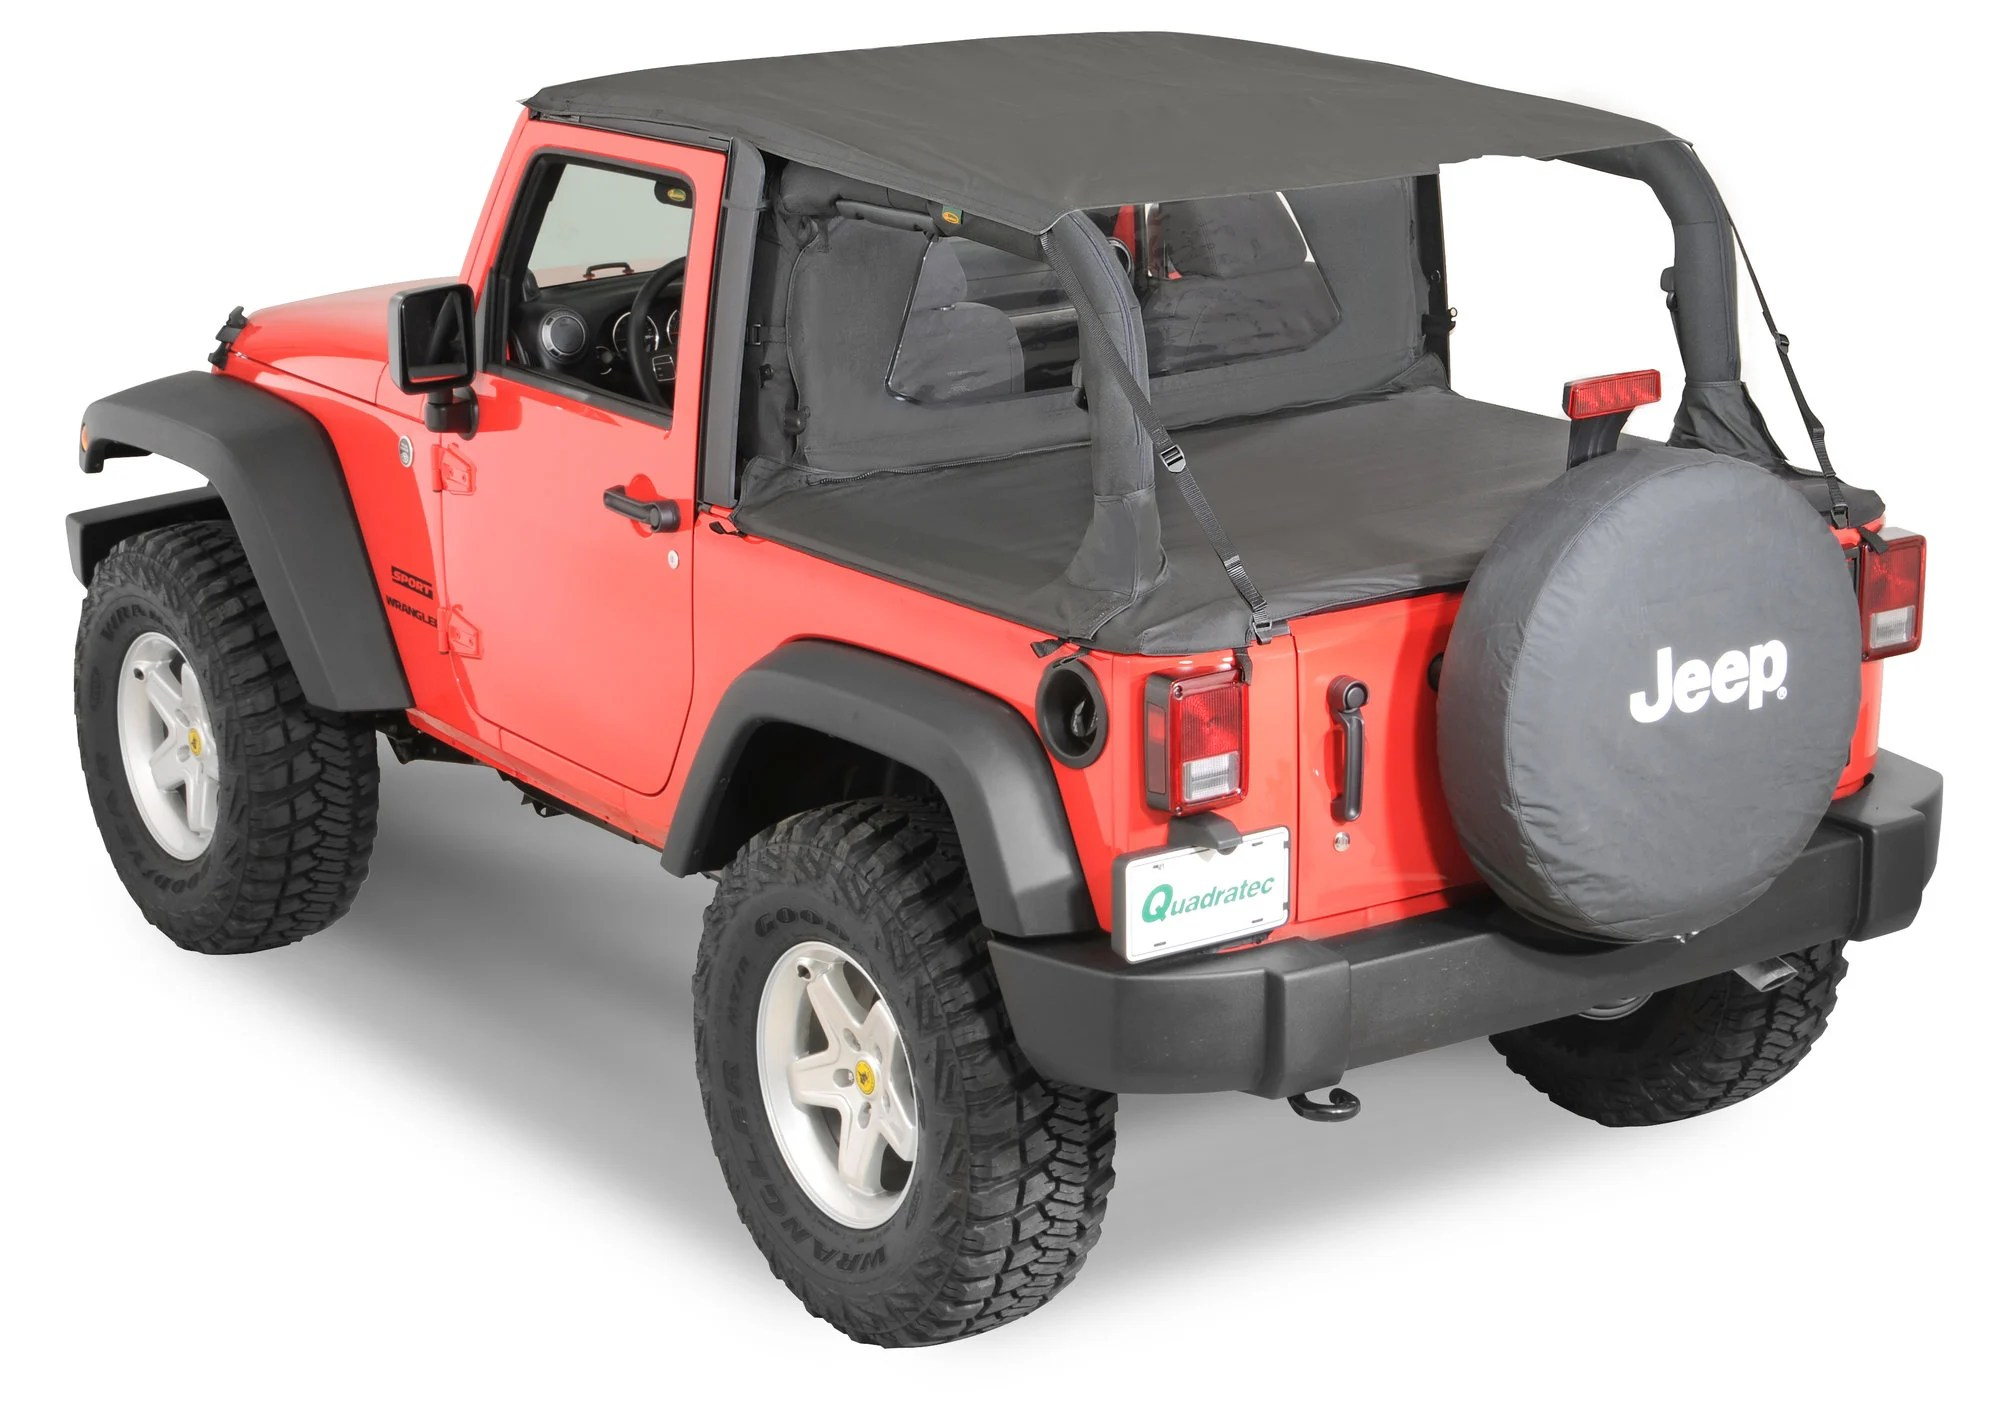 hight resolution of quadratop bimini top plus clearview windstopper tonno cover combo in black diamond for 07 18 jeep wrangler jk 2 door